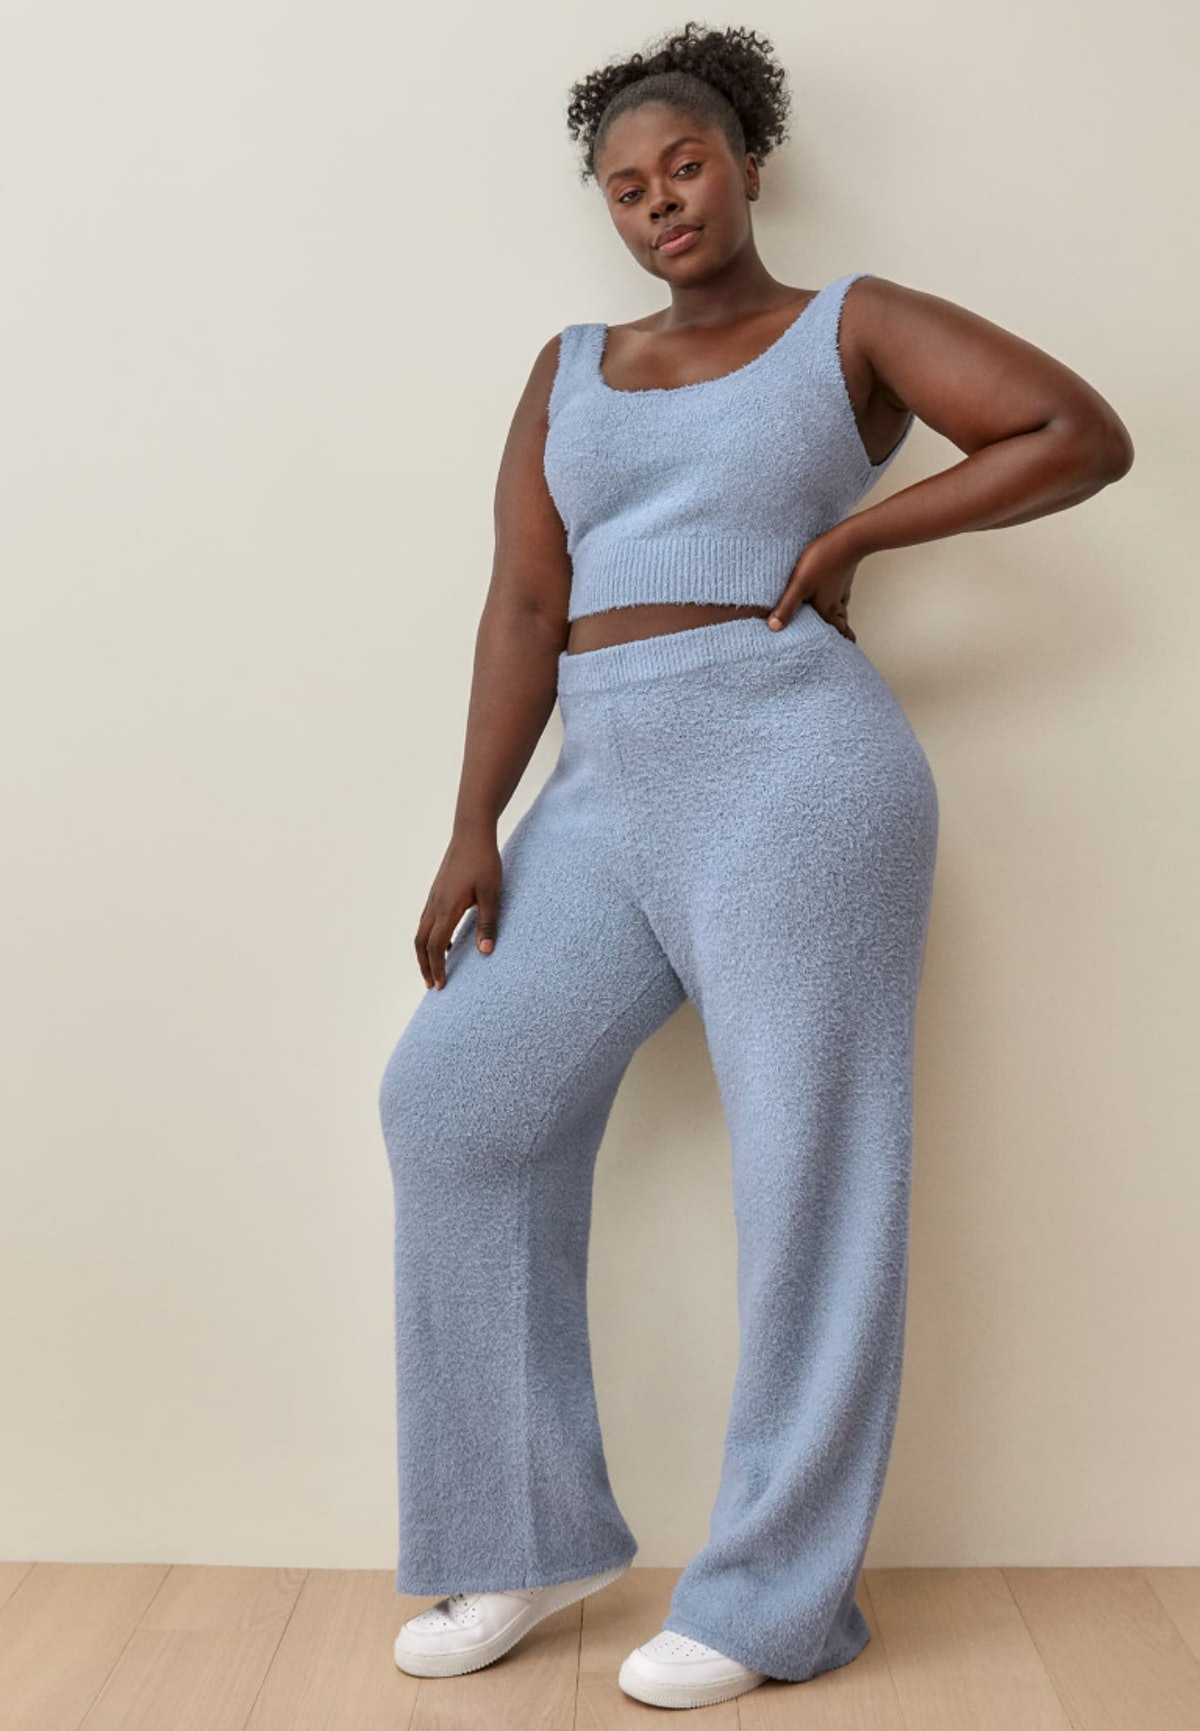 Reformation's Isle Two Piece Sets Es in sky blue.